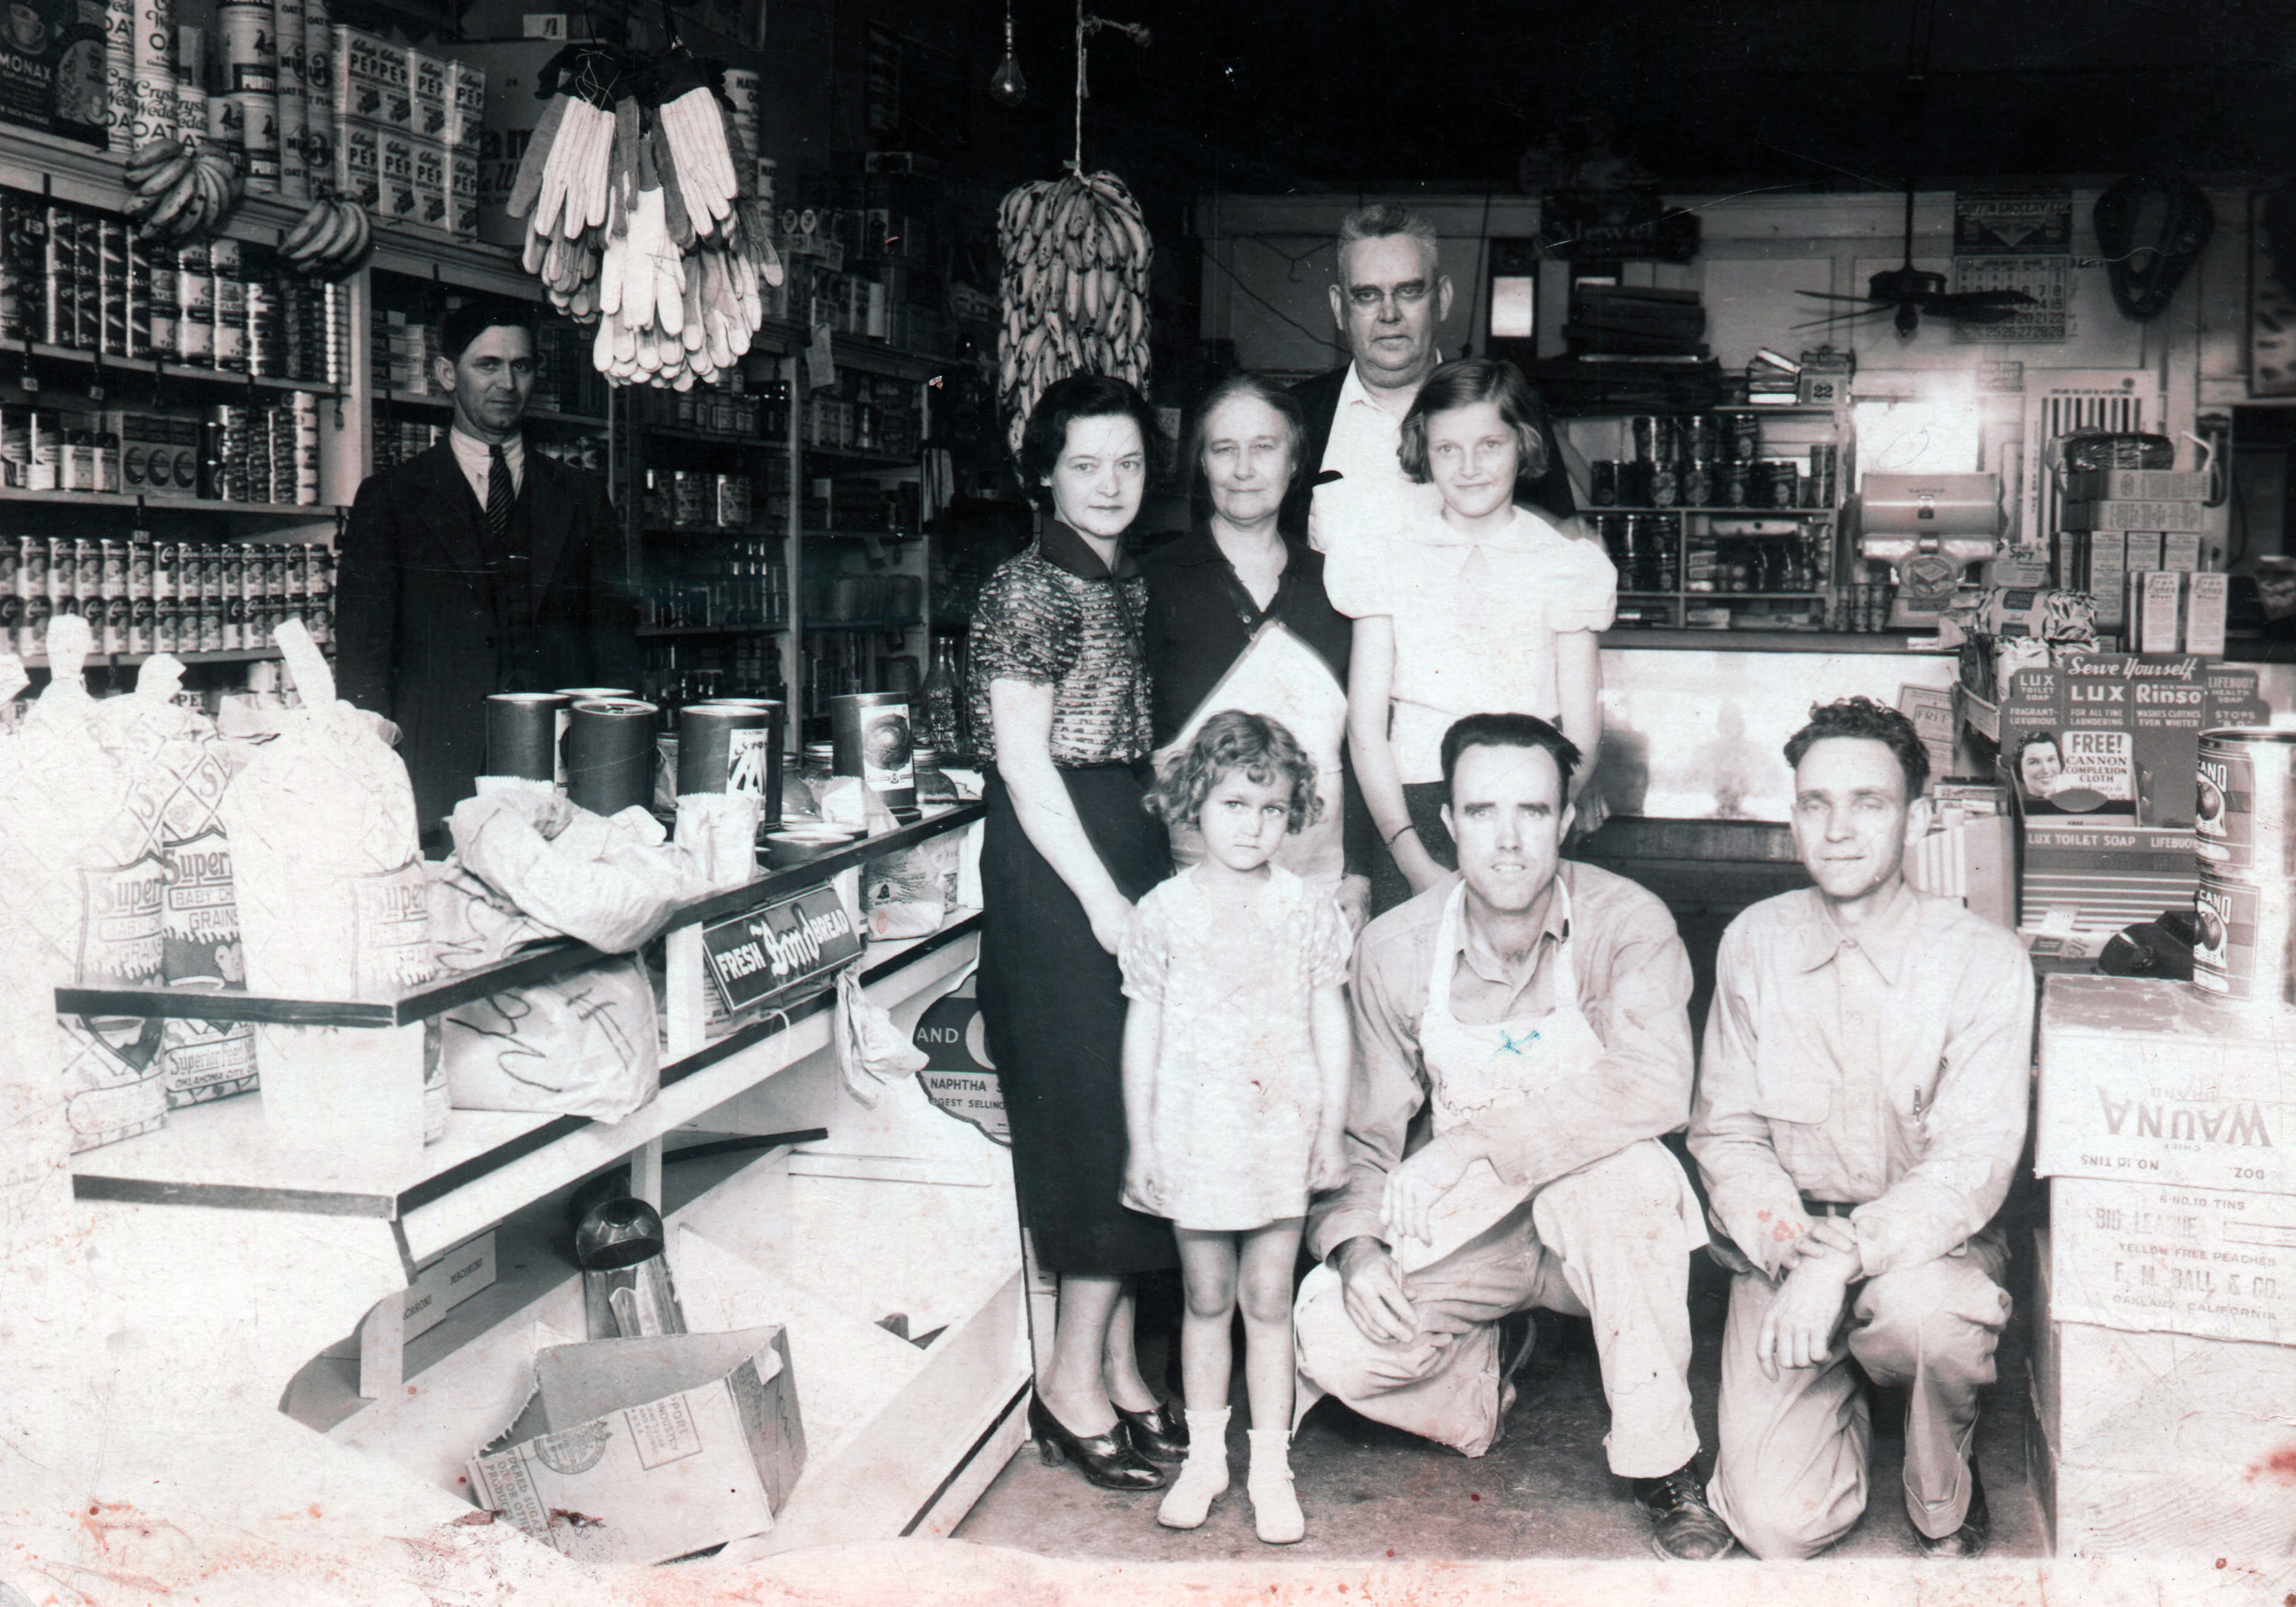 Jim Trout Grocery Store, in Drumright, Oklahoma, with the Trout and Jones' family members